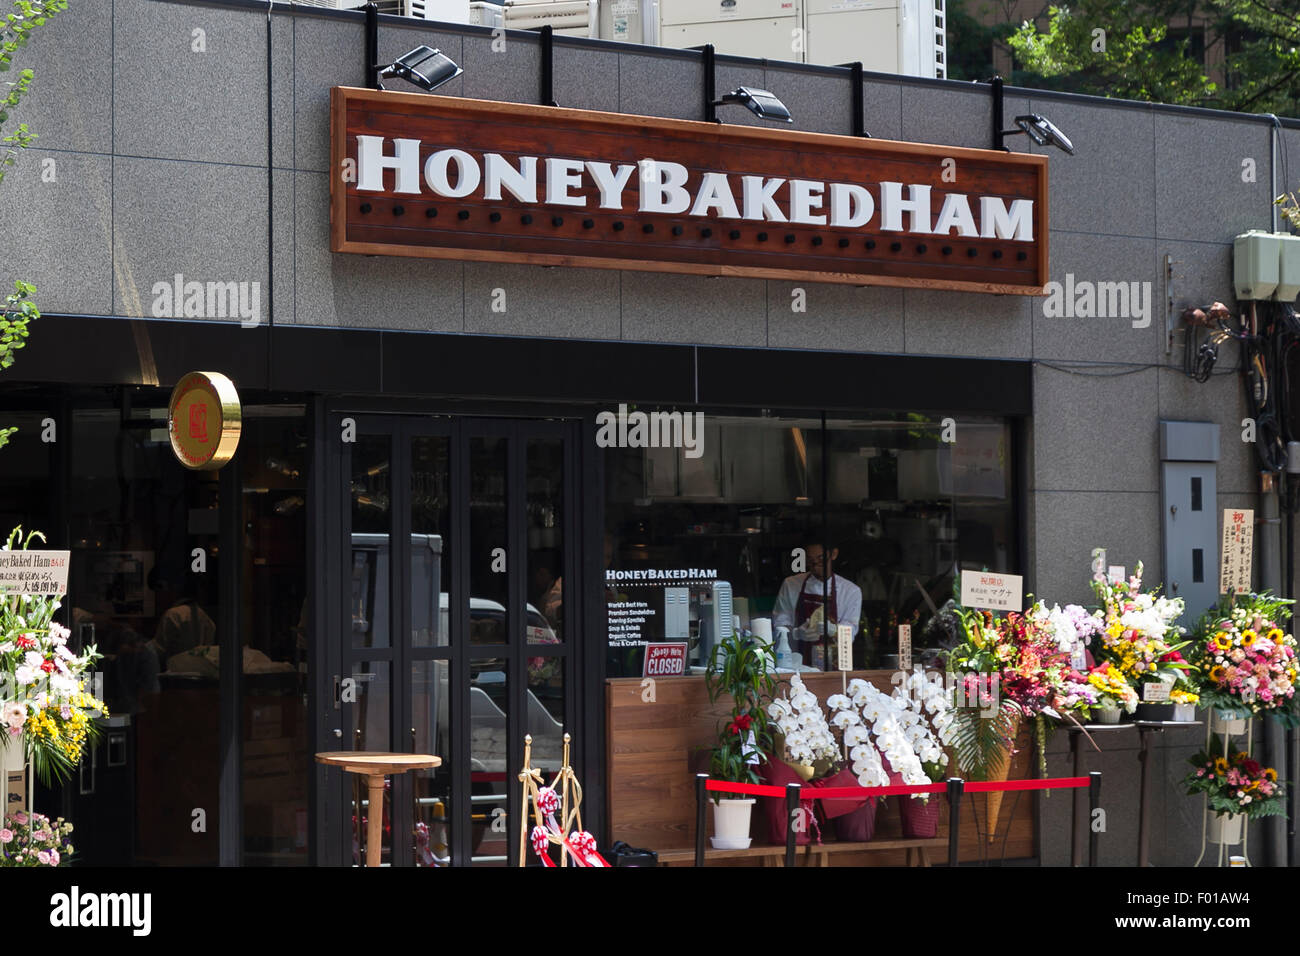 Ham company - A View Of The New Honey Baked Ham Store In Tokyo Japan On August 6 2015 The Honey Baked Ham Company Llc In Collaboration With Toranomon Ham Co Ltd